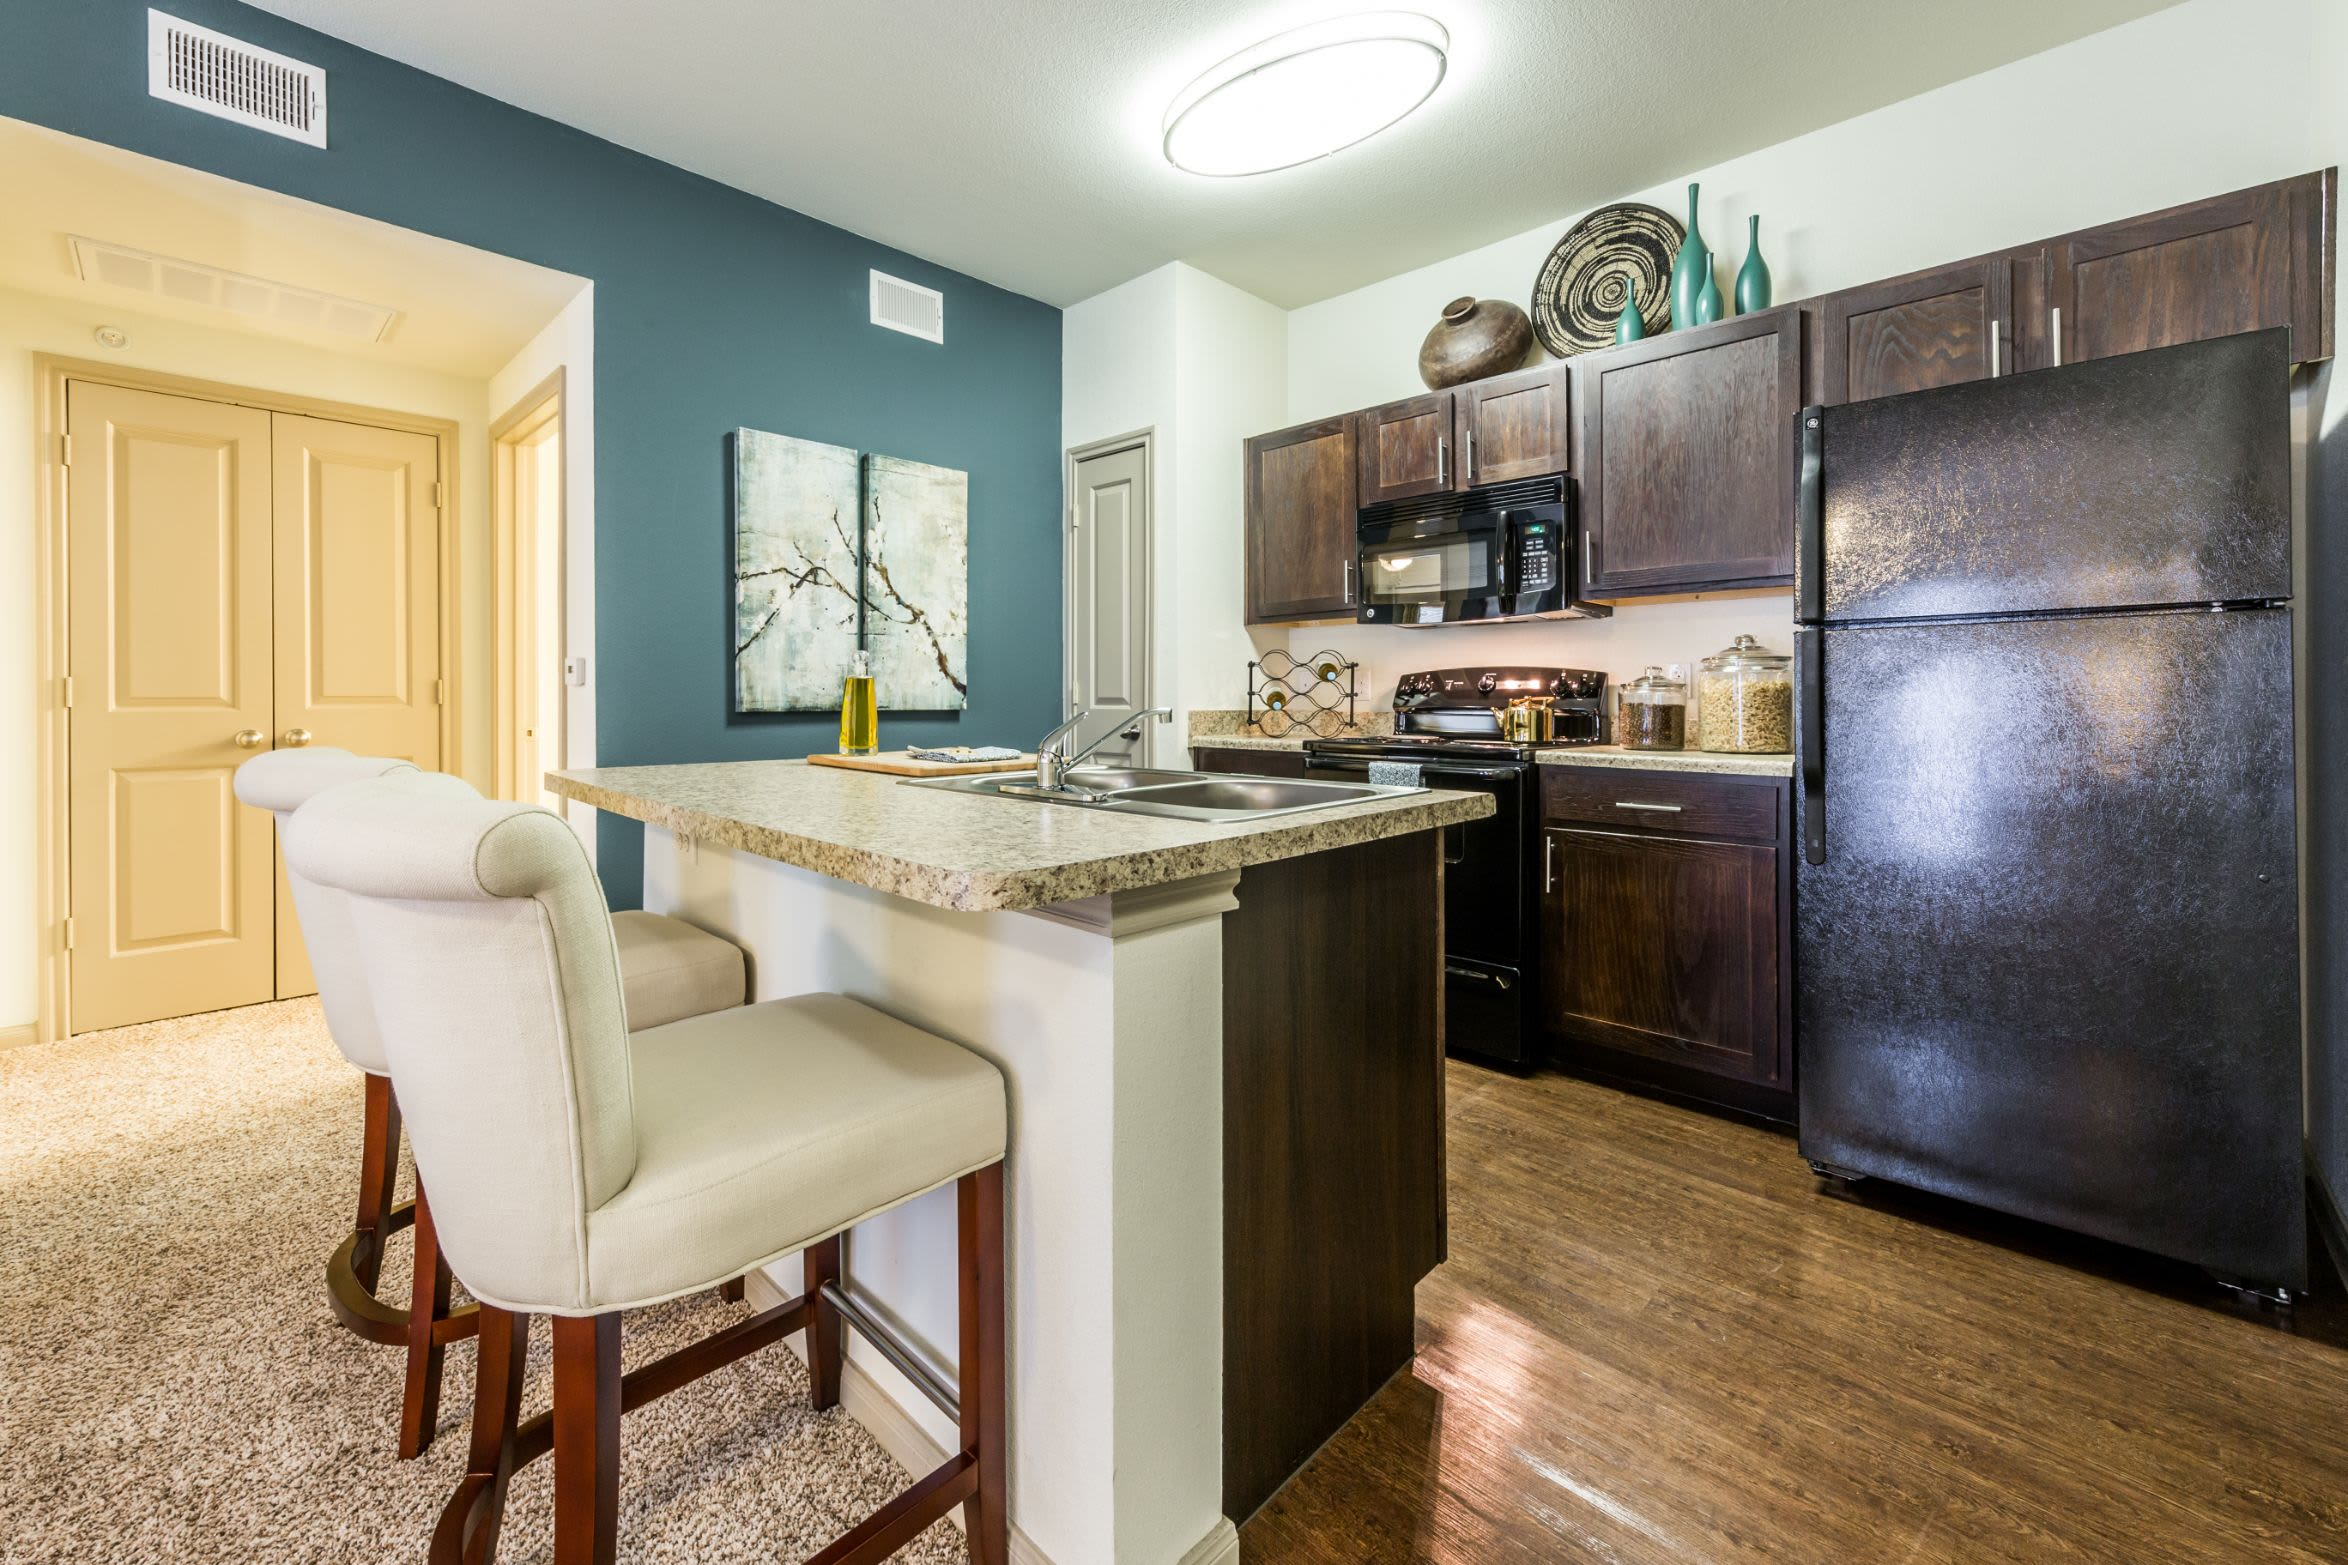 Modern kitchen with a breakfast bar at Marquis on Lakeline in Cedar Park, Texas